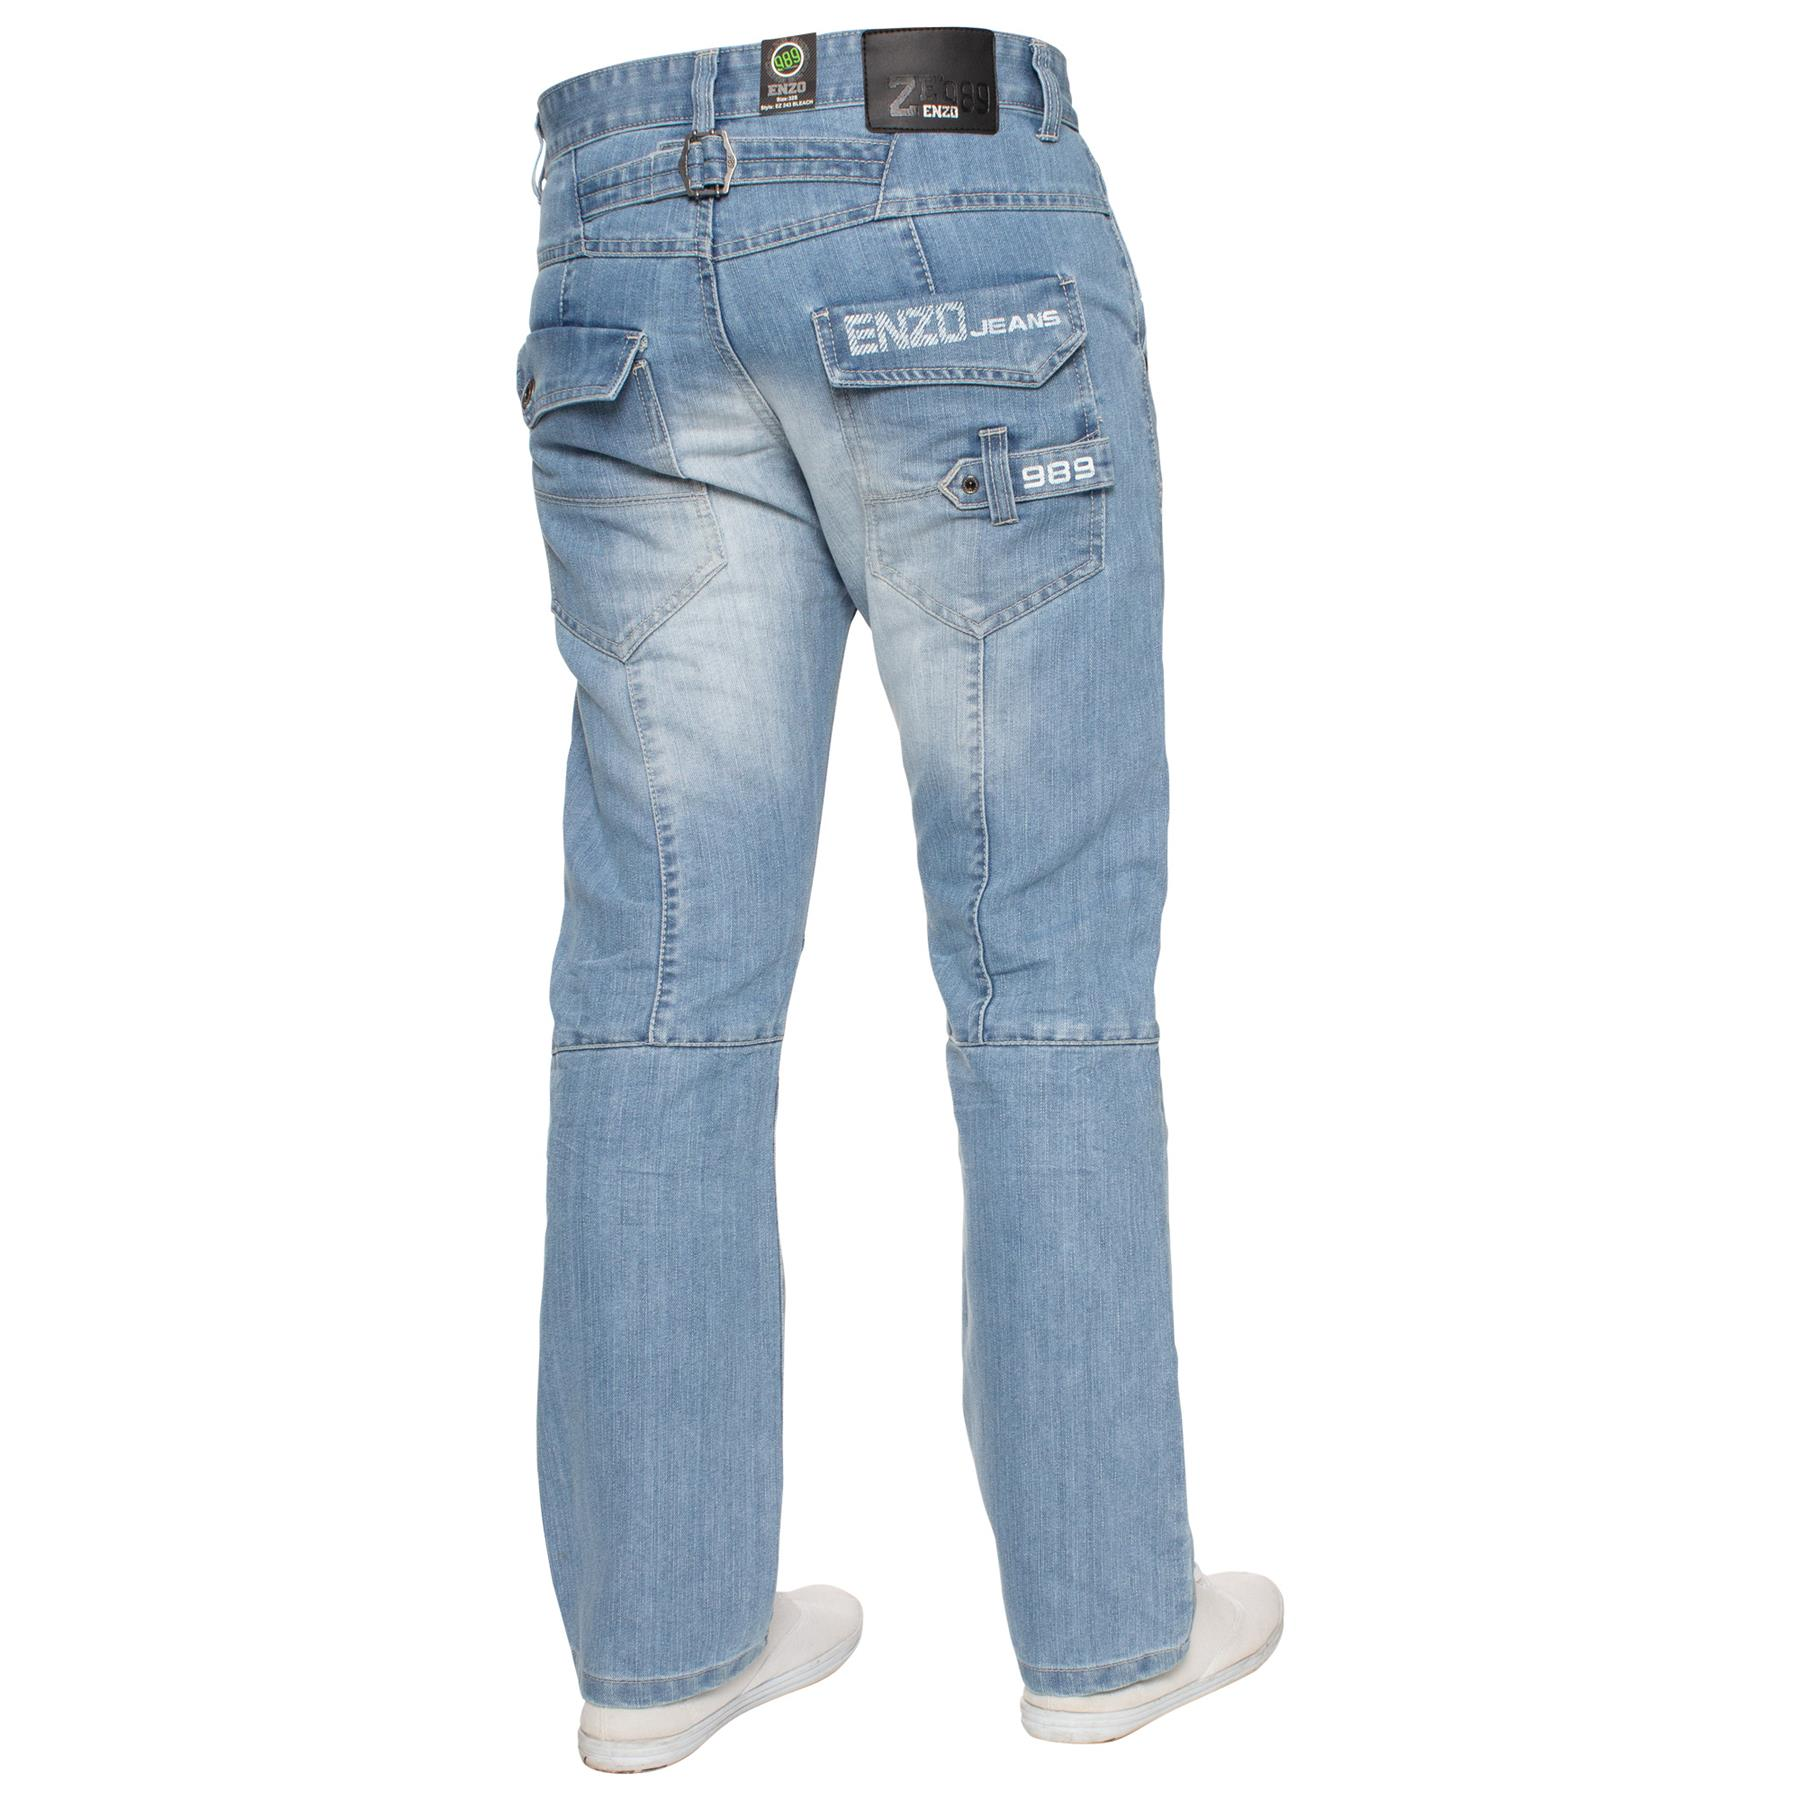 Enzo-Mens-Jeans-Big-Tall-Leg-King-Size-Denim-Pants-Chino-Trousers-Waist-44-034-60-034 miniature 51